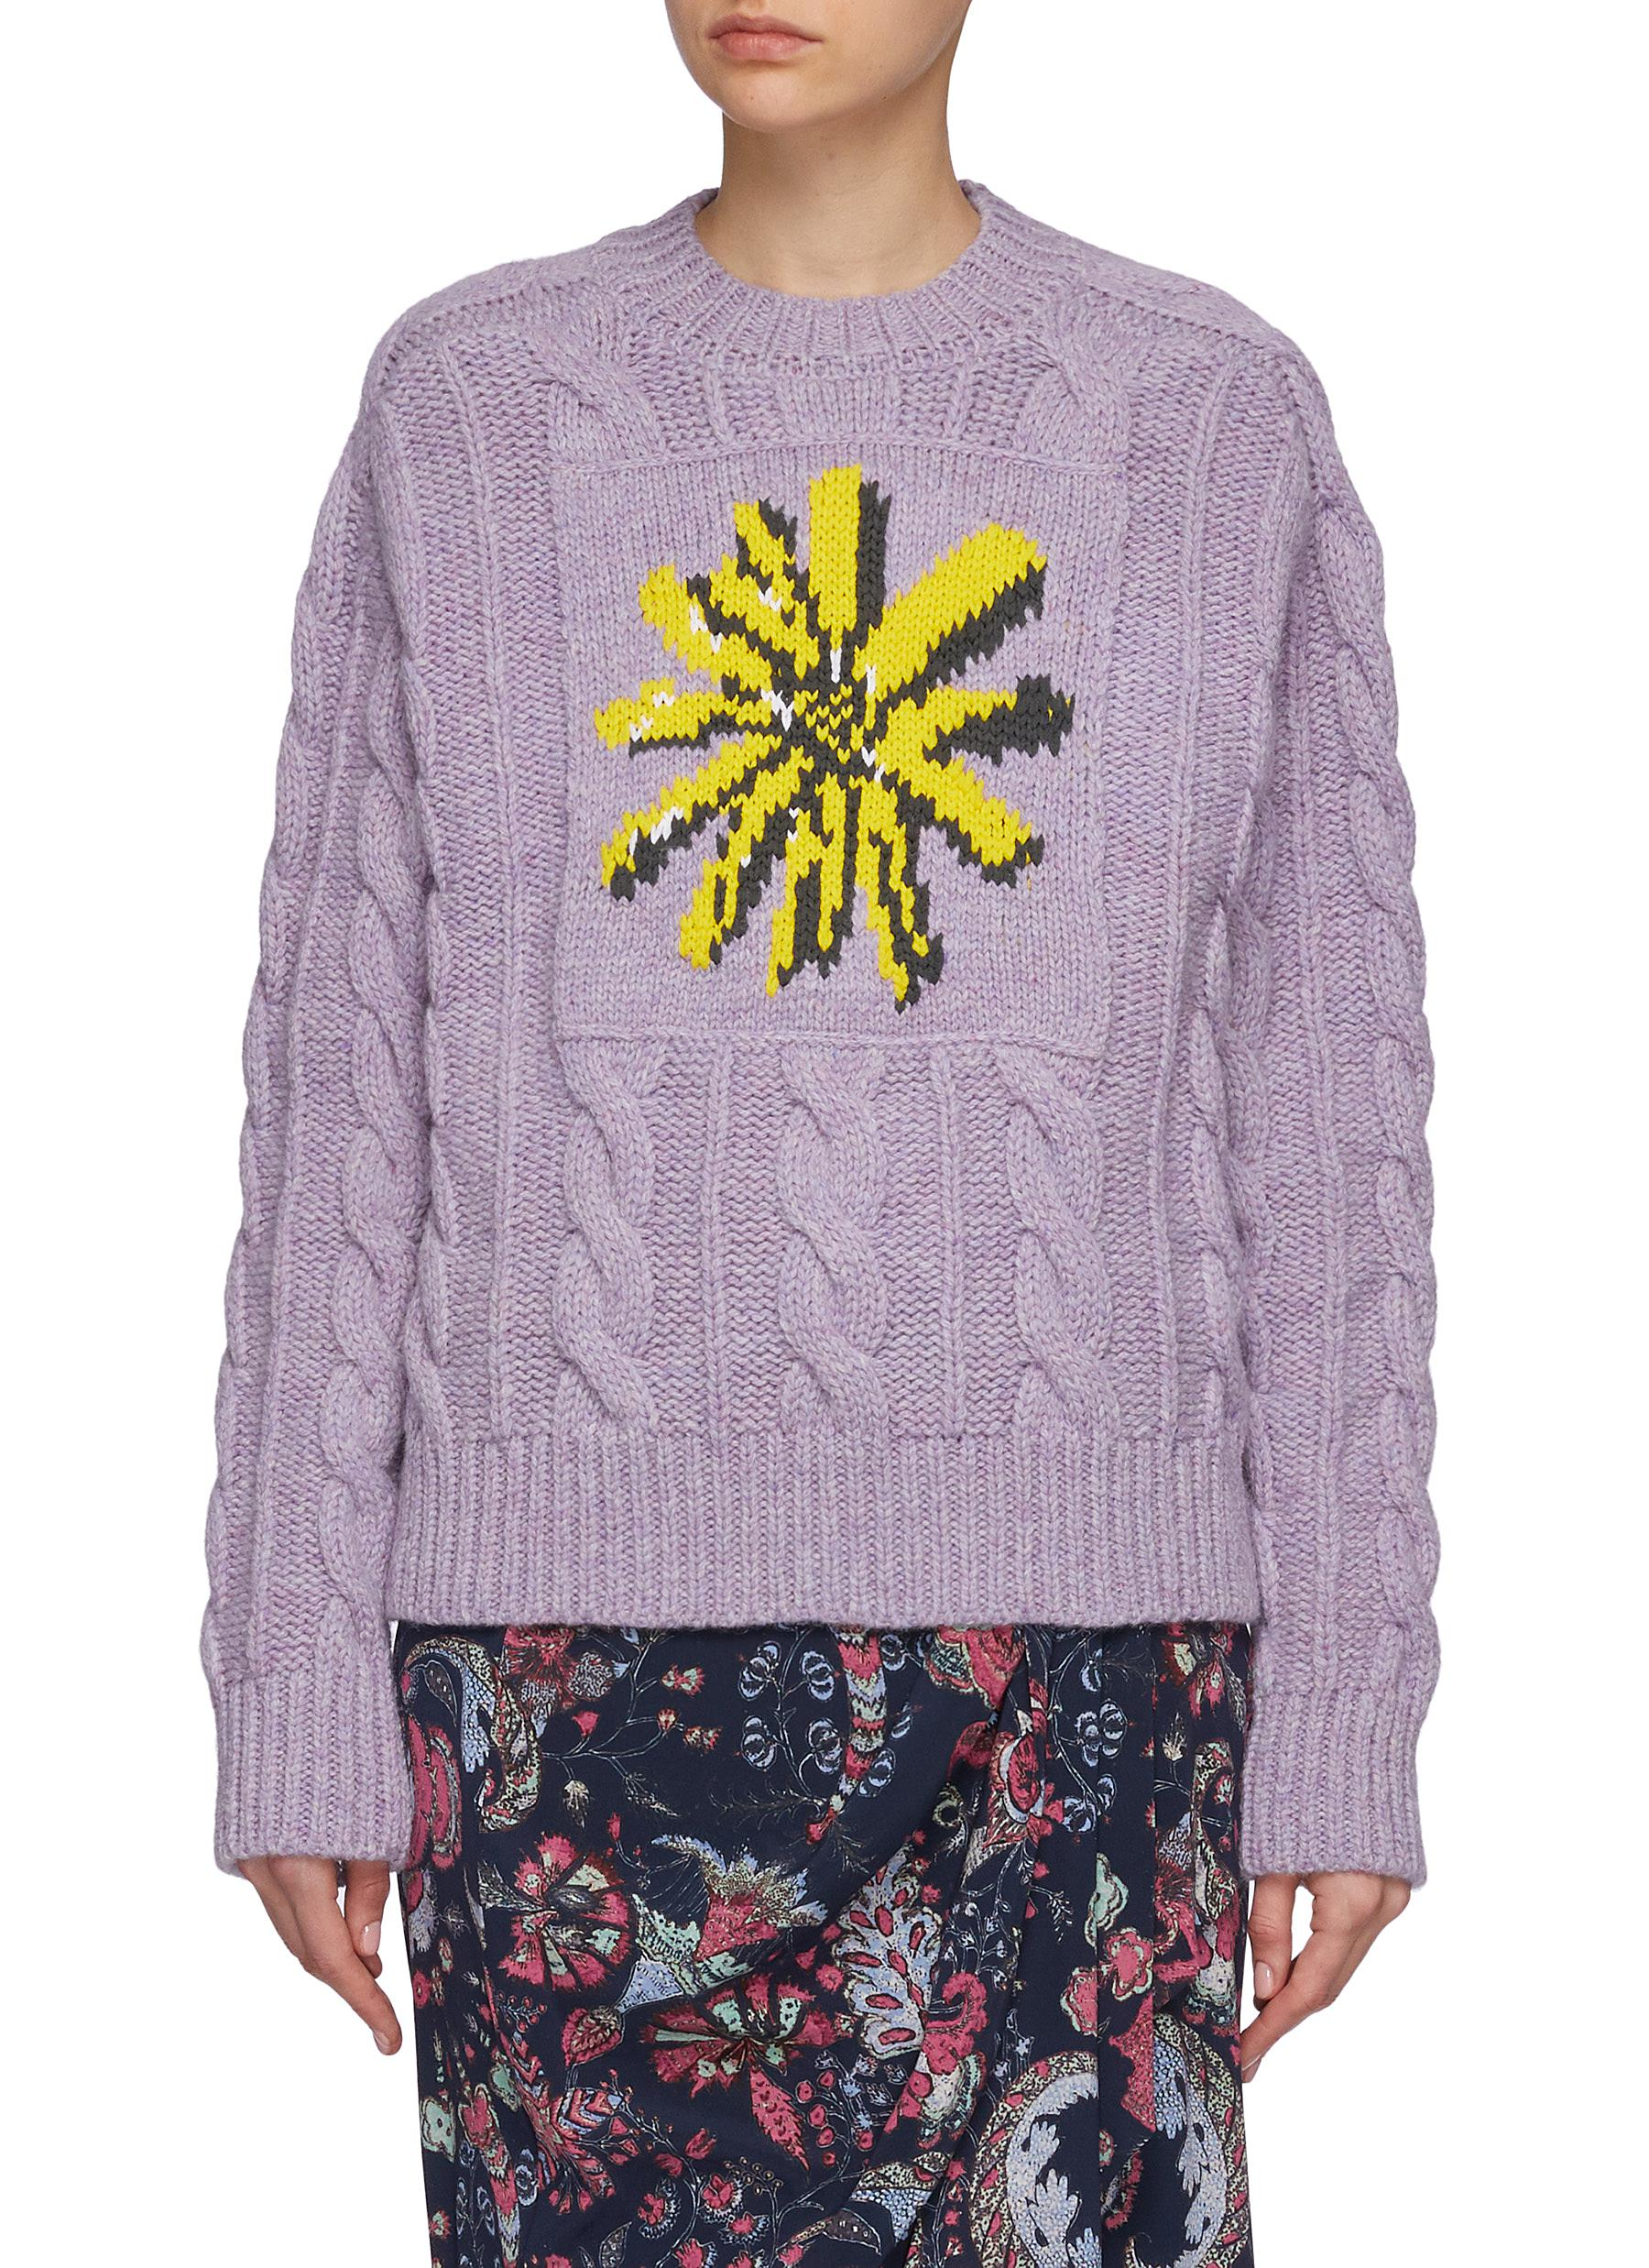 Daisy Jacquard Cable Knit Wool Blend Sweater